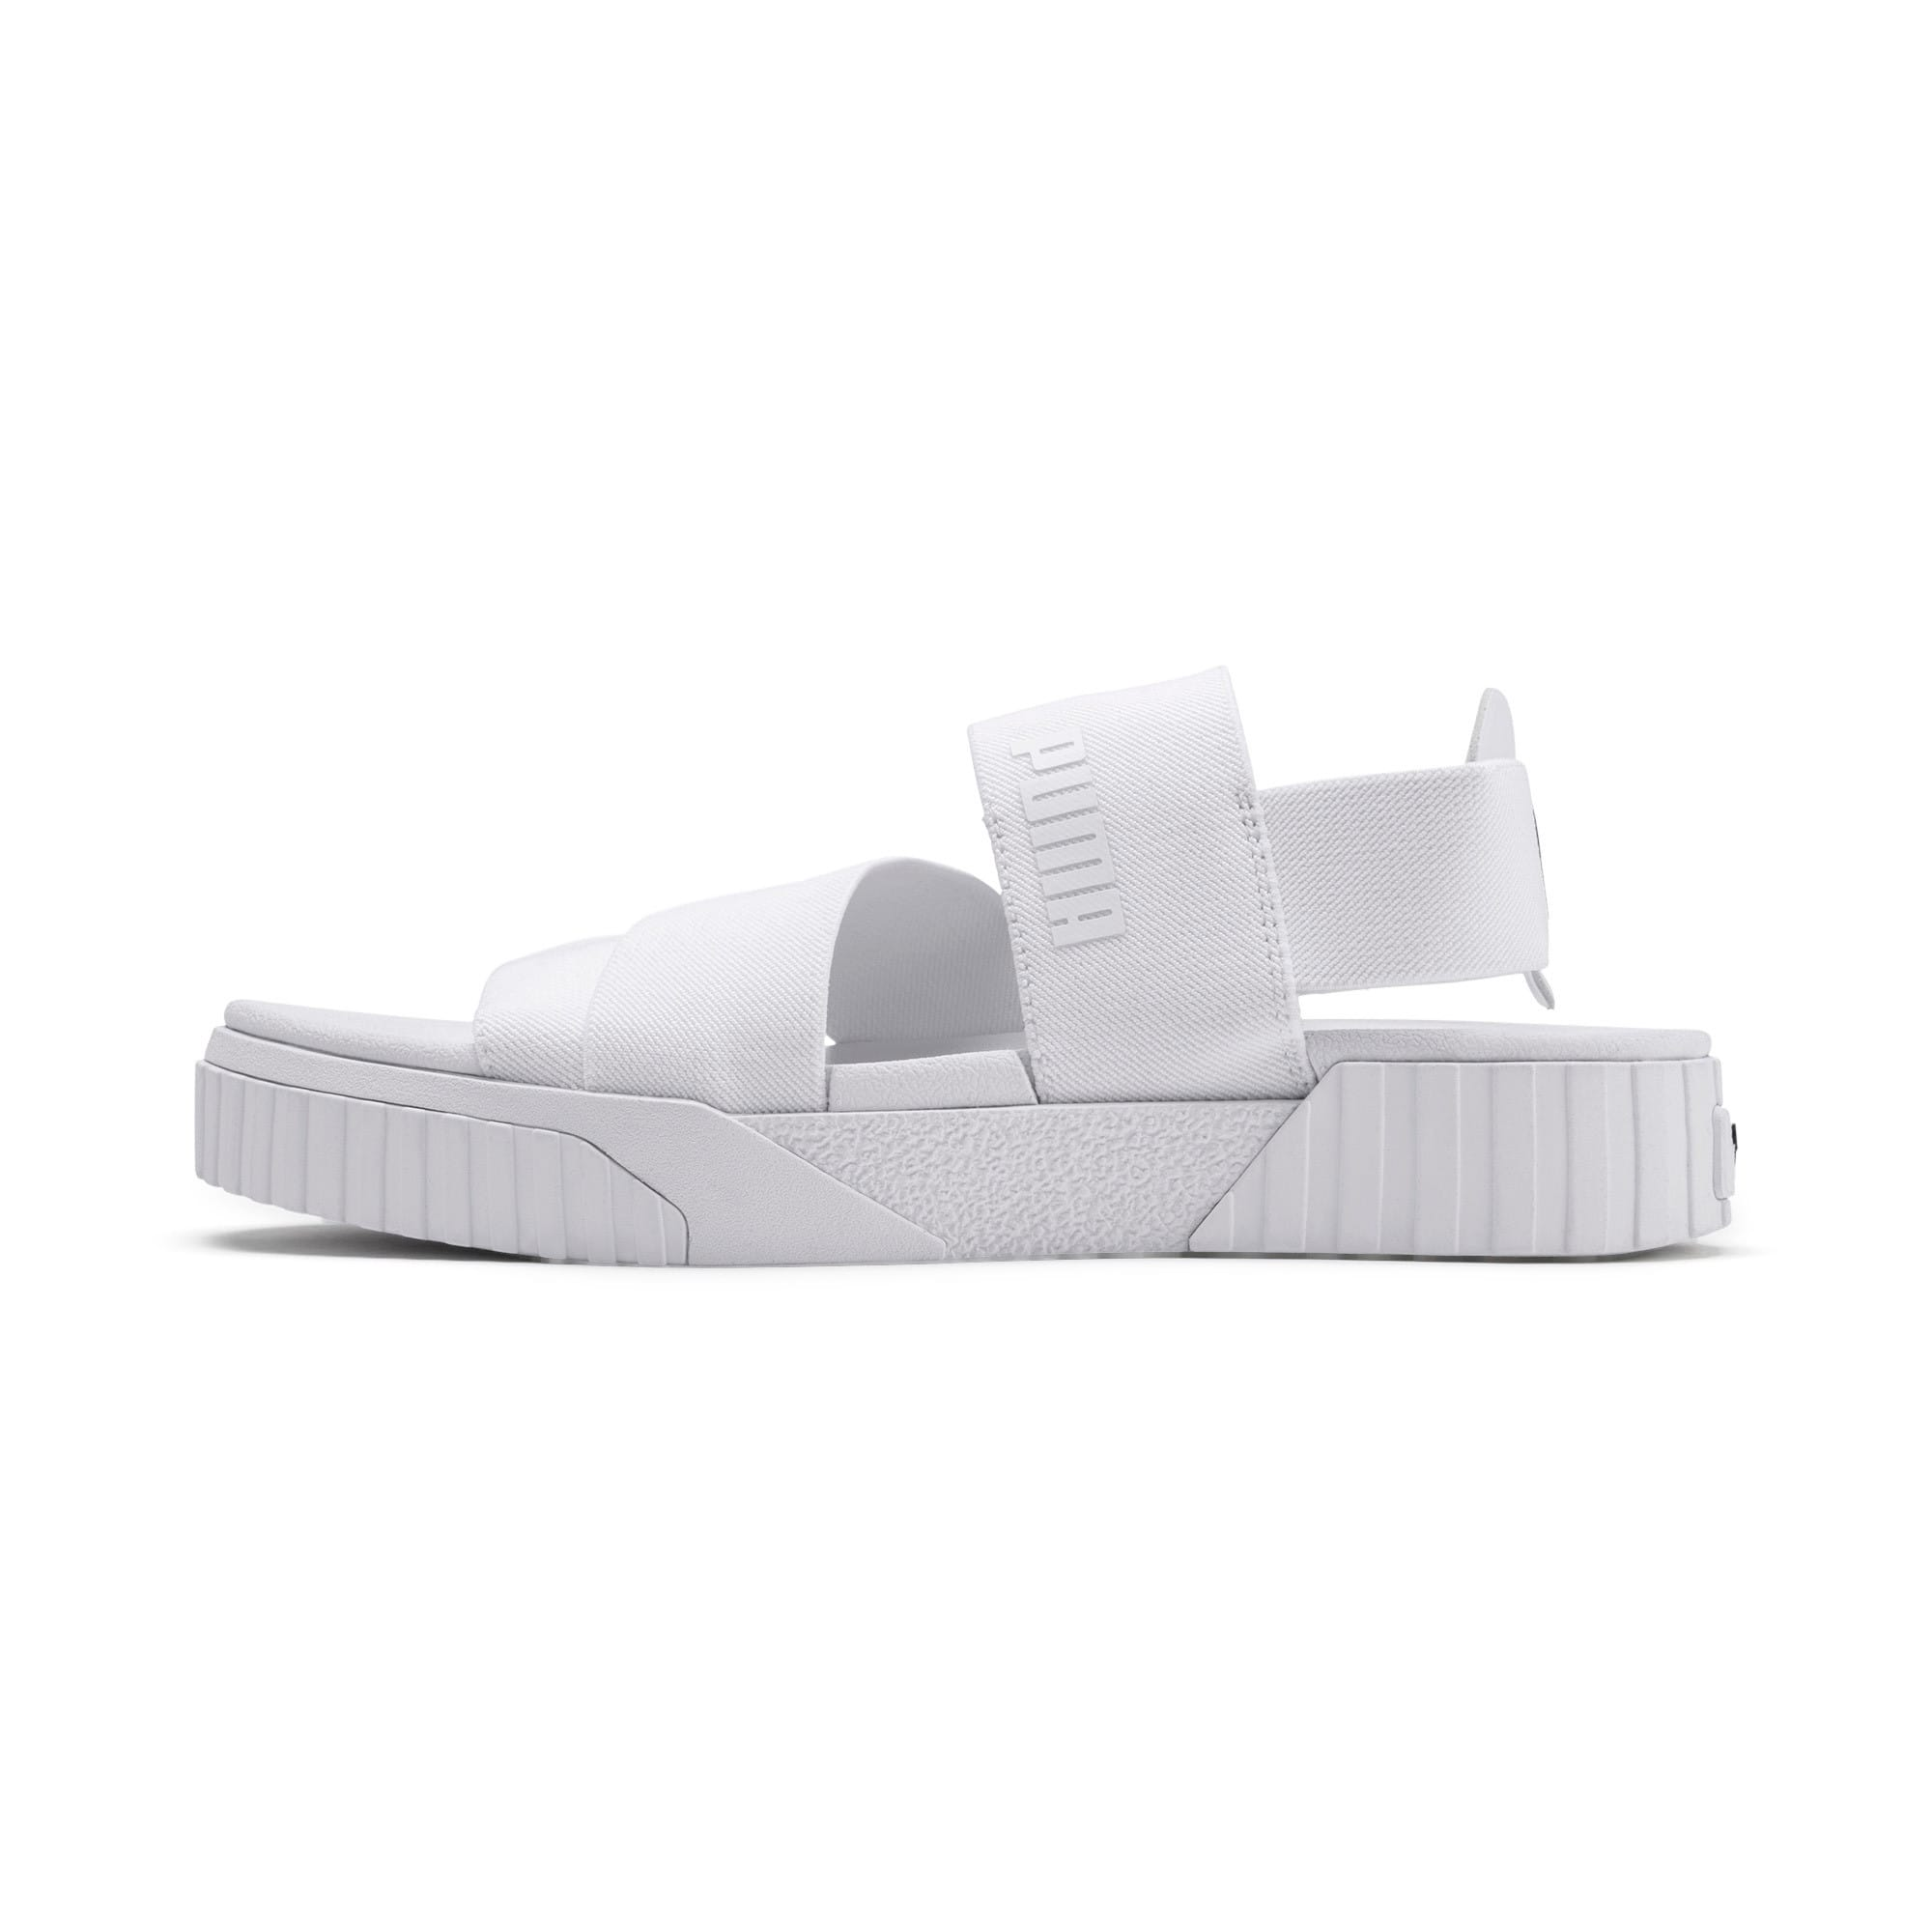 Thumbnail 1 of PUMA x SELENA GOMEZ Cali Damen Sandalen, Puma White, medium